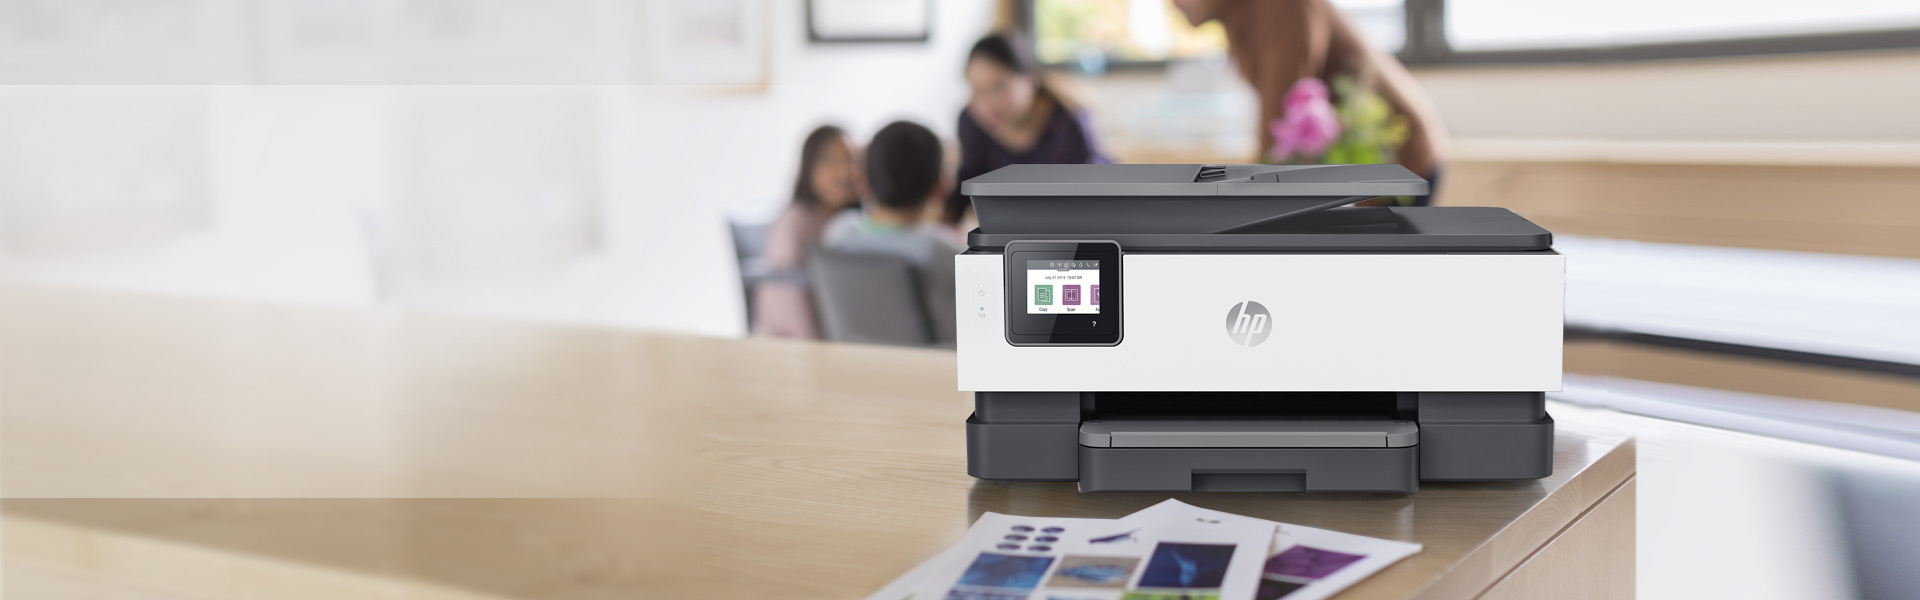 Ink Printer in a Home Office setting